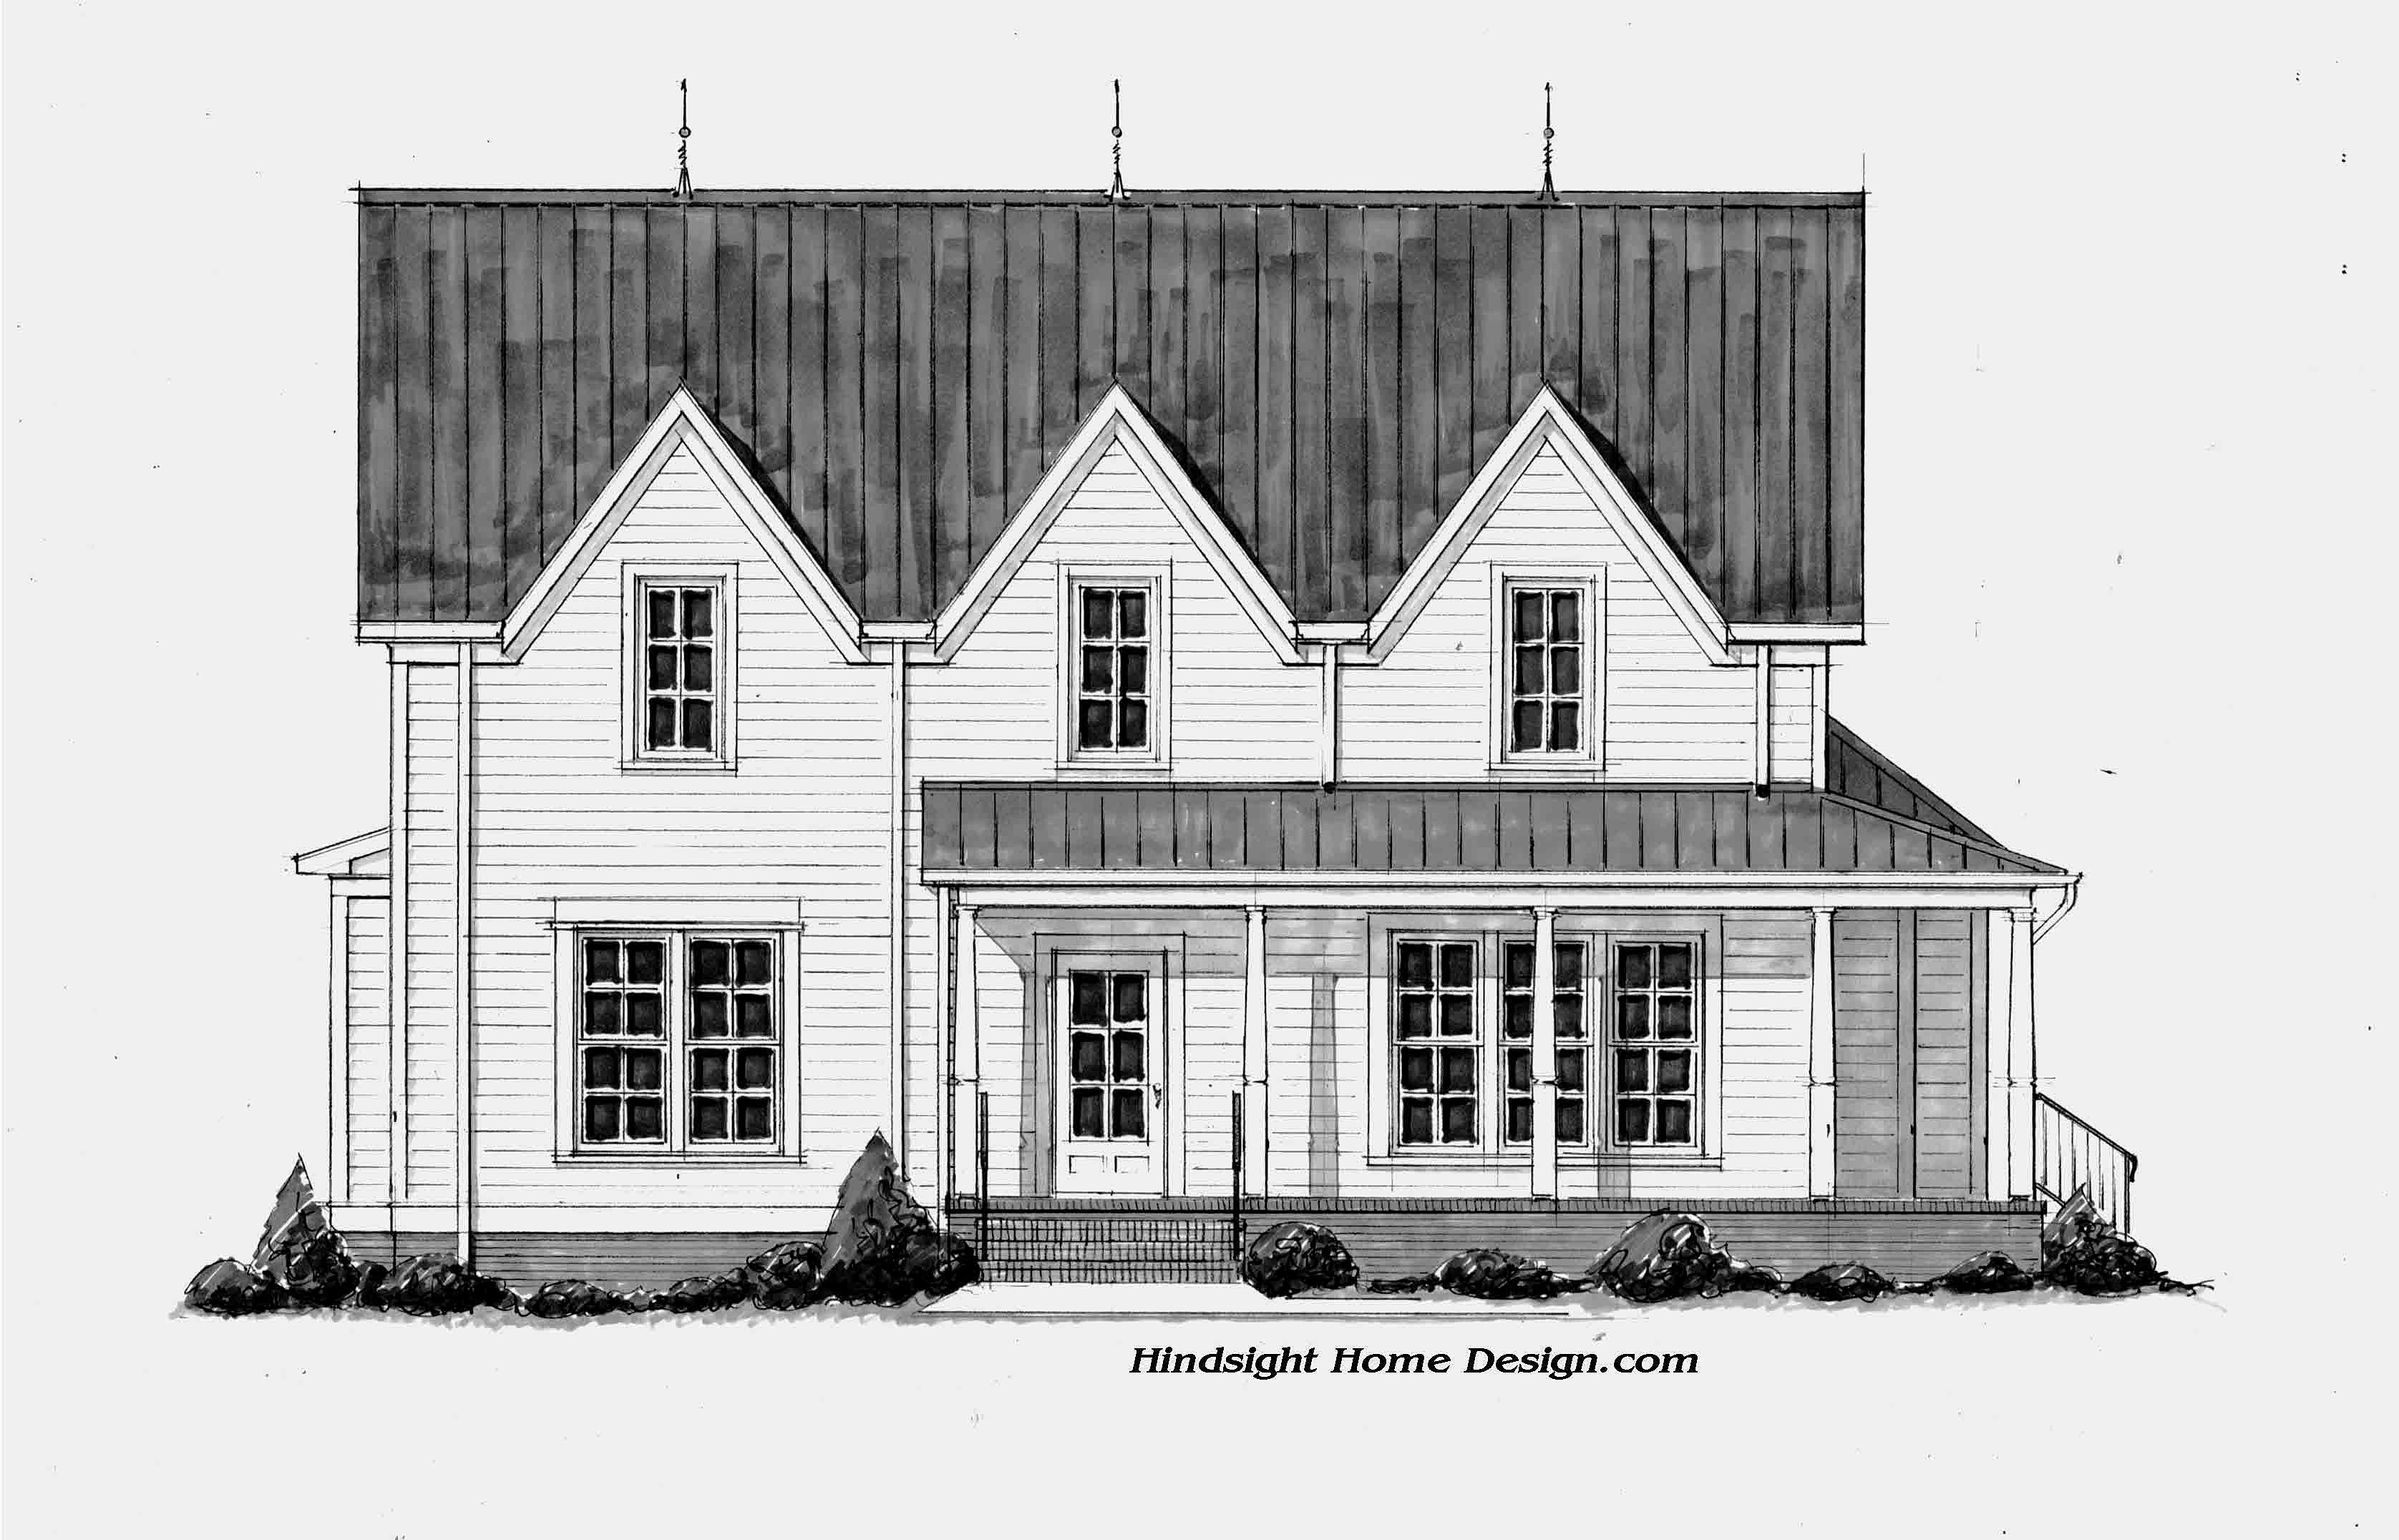 Hindsight home design llc nashville house plans for Nashville tn house plans